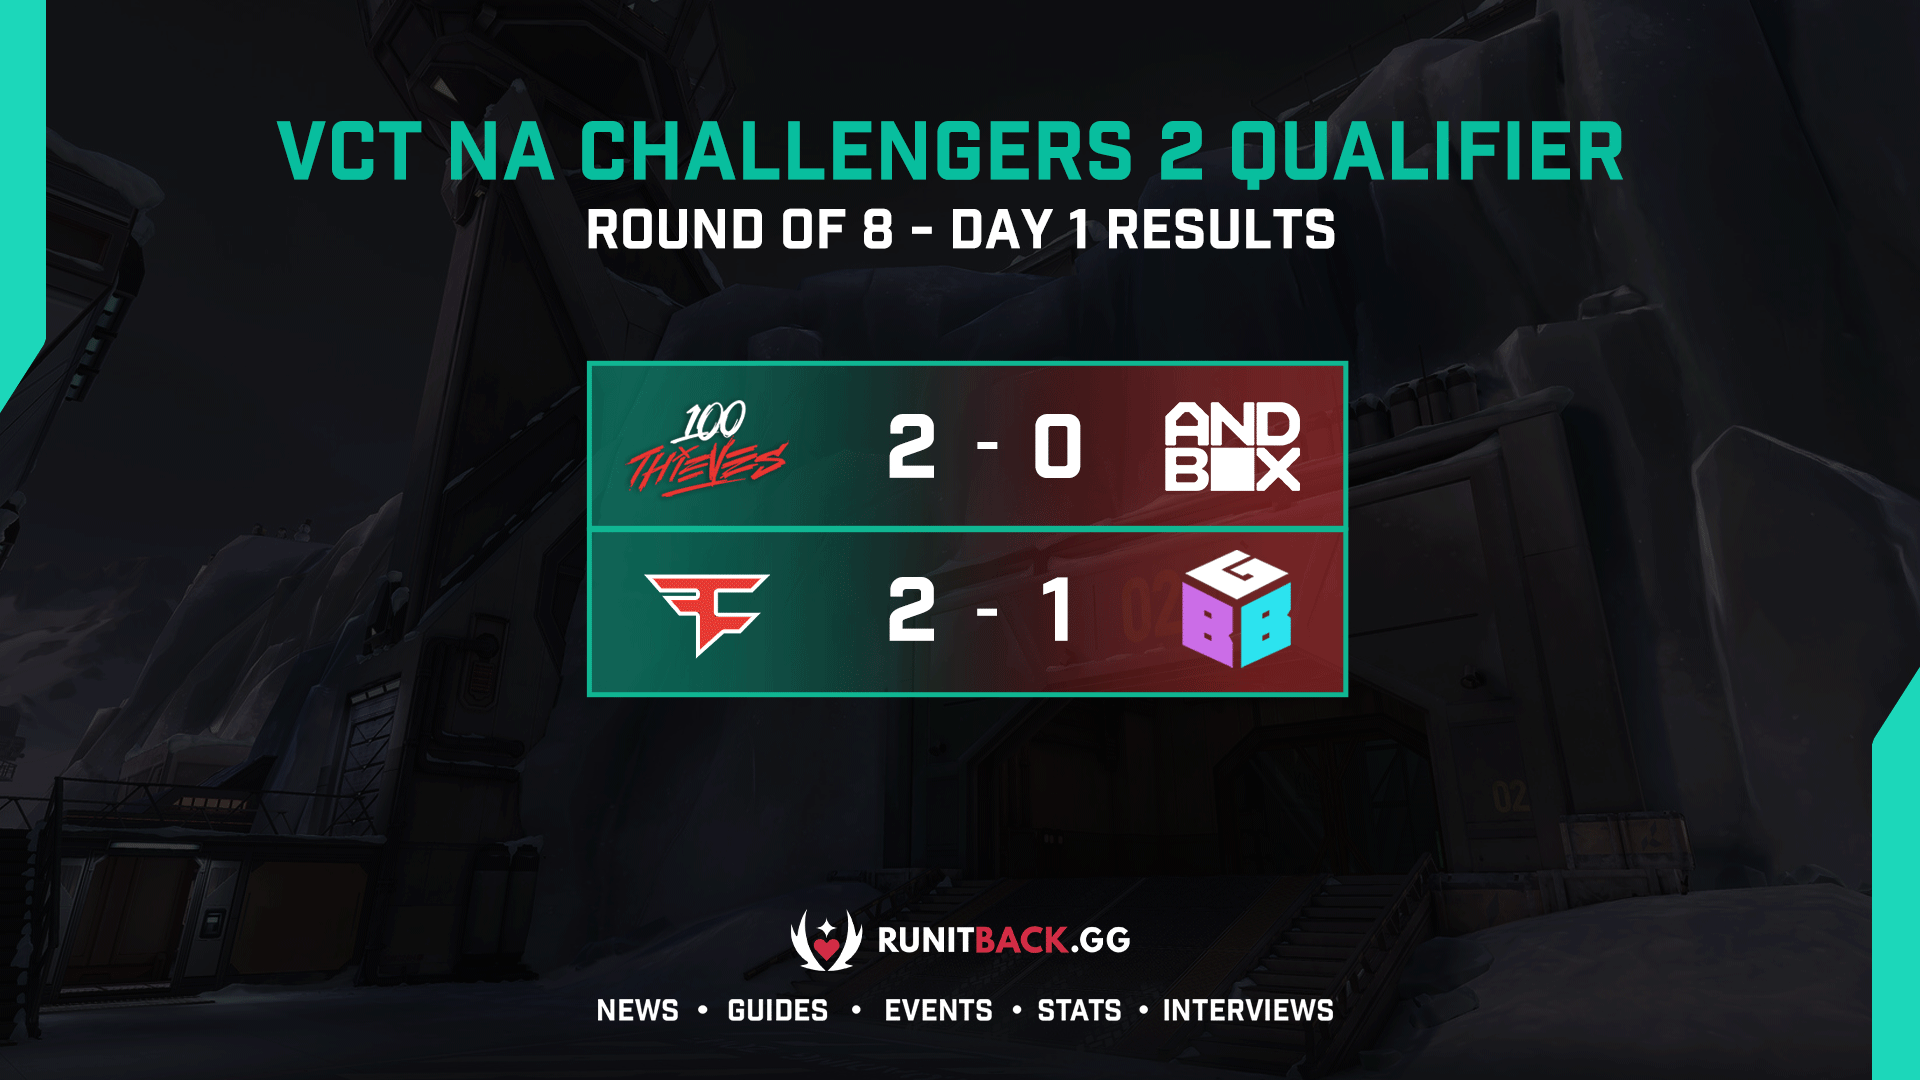 VCT NA Challengers 2 Qualifier: Round of 8 Day 1 Results